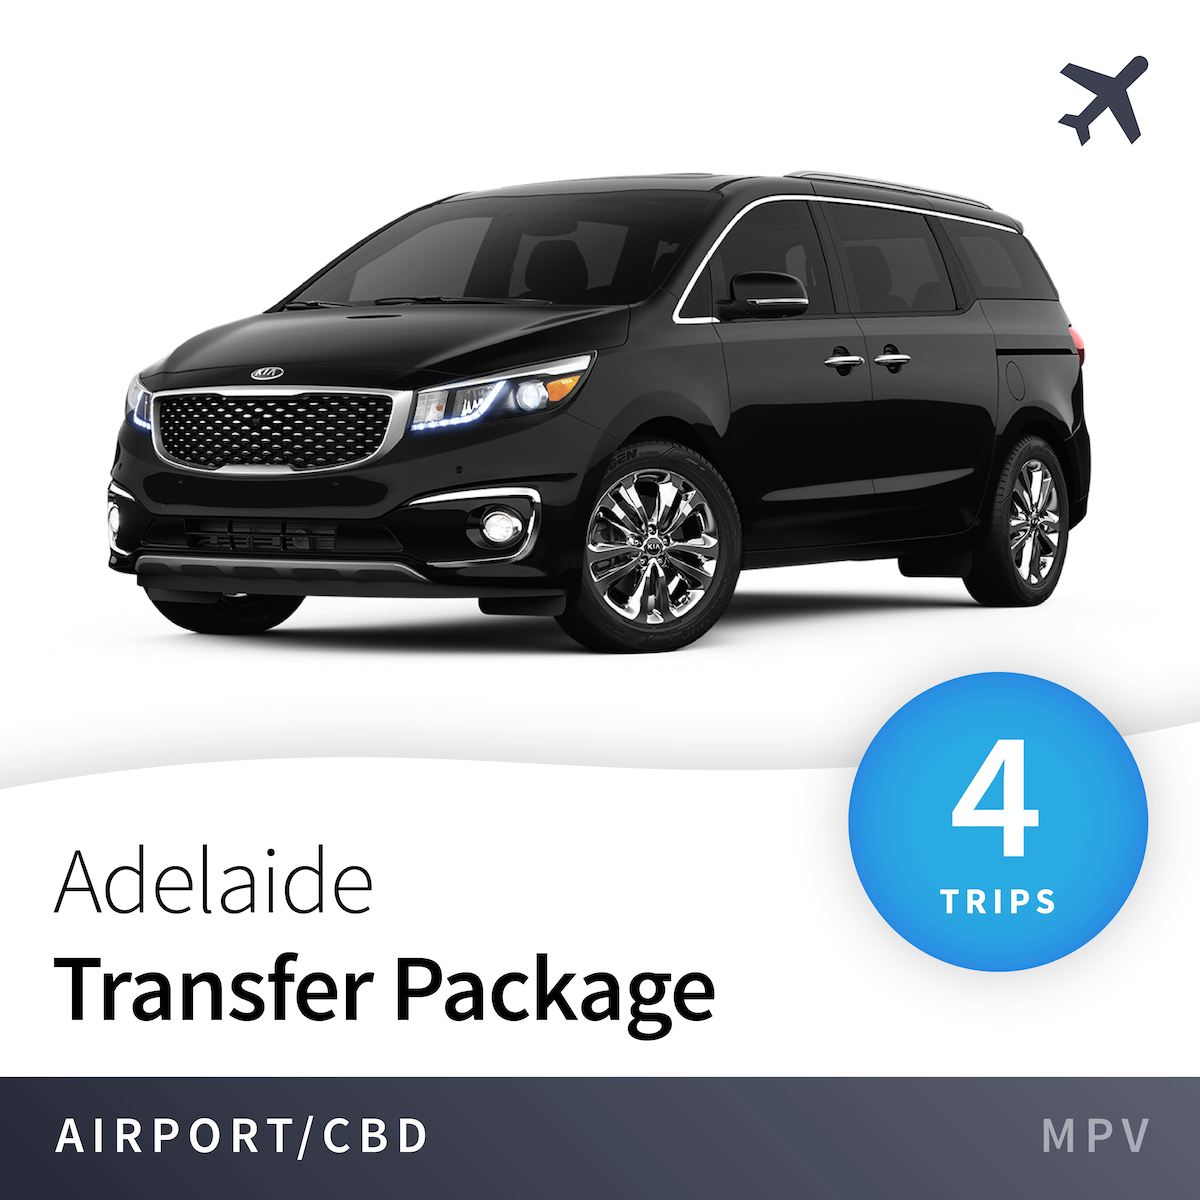 Adelaide Airport Transfer Package - MPV (4 Trips) 2